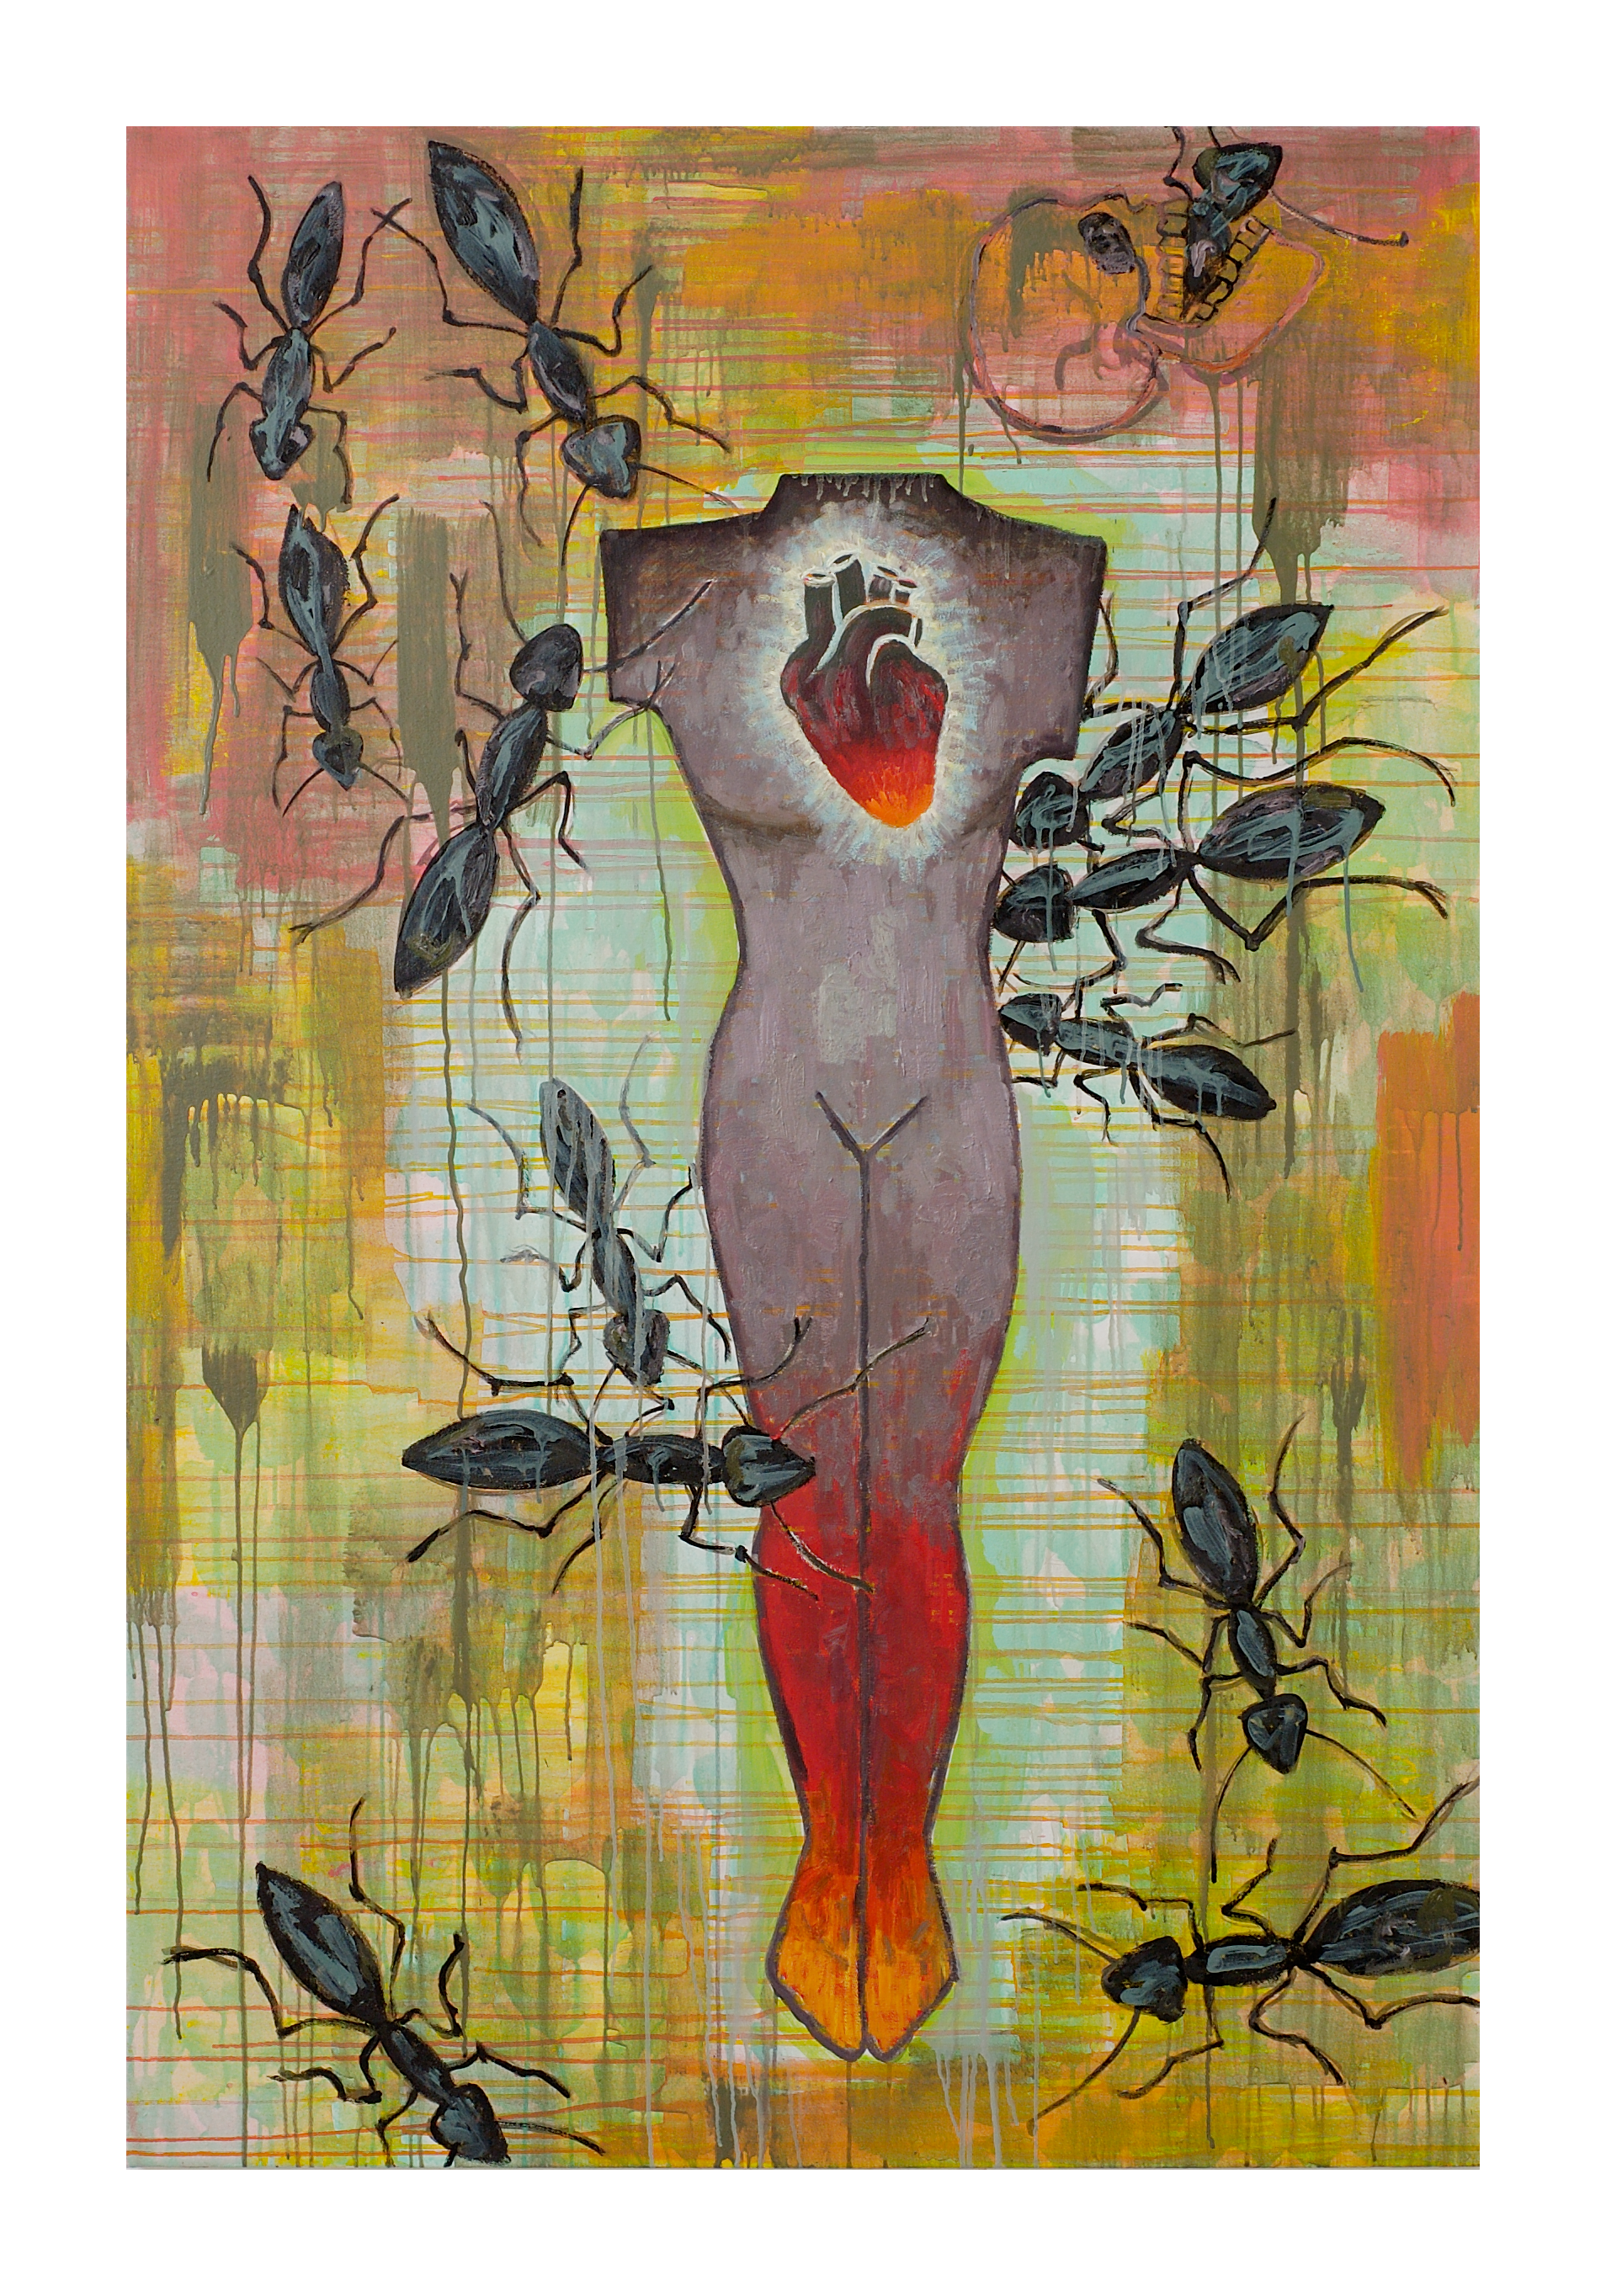 Jaune Quick-to-See Smith, <i>Which Comes First (The Insects or the Humans)</i>, 2004. Coleção: Garth Greenan Gallery. Cortesia da artista